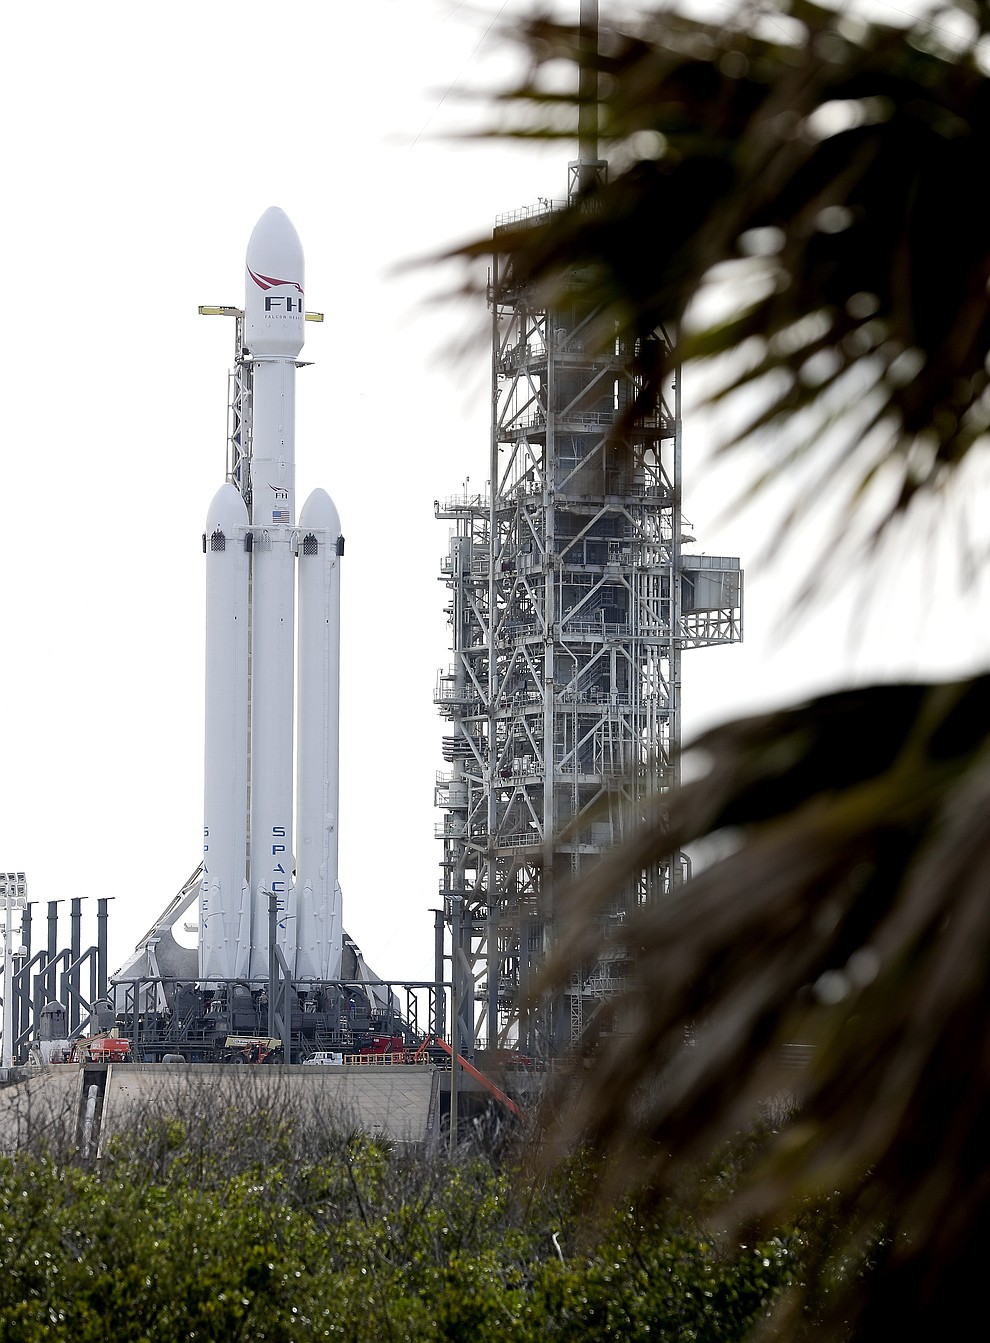 A Falcon 9 SpaceX heavy rocket stands ready for launch on pad 39A at the Kennedy Space Center in Cape Canaveral, Fla., Monday, Feb. 5, 2018. The Falcon Heavy, scheduled to launch Tuesday afternoon, has three first-stage boosters, strapped together with 27 engines in all. (AP Photo/John Raoux)